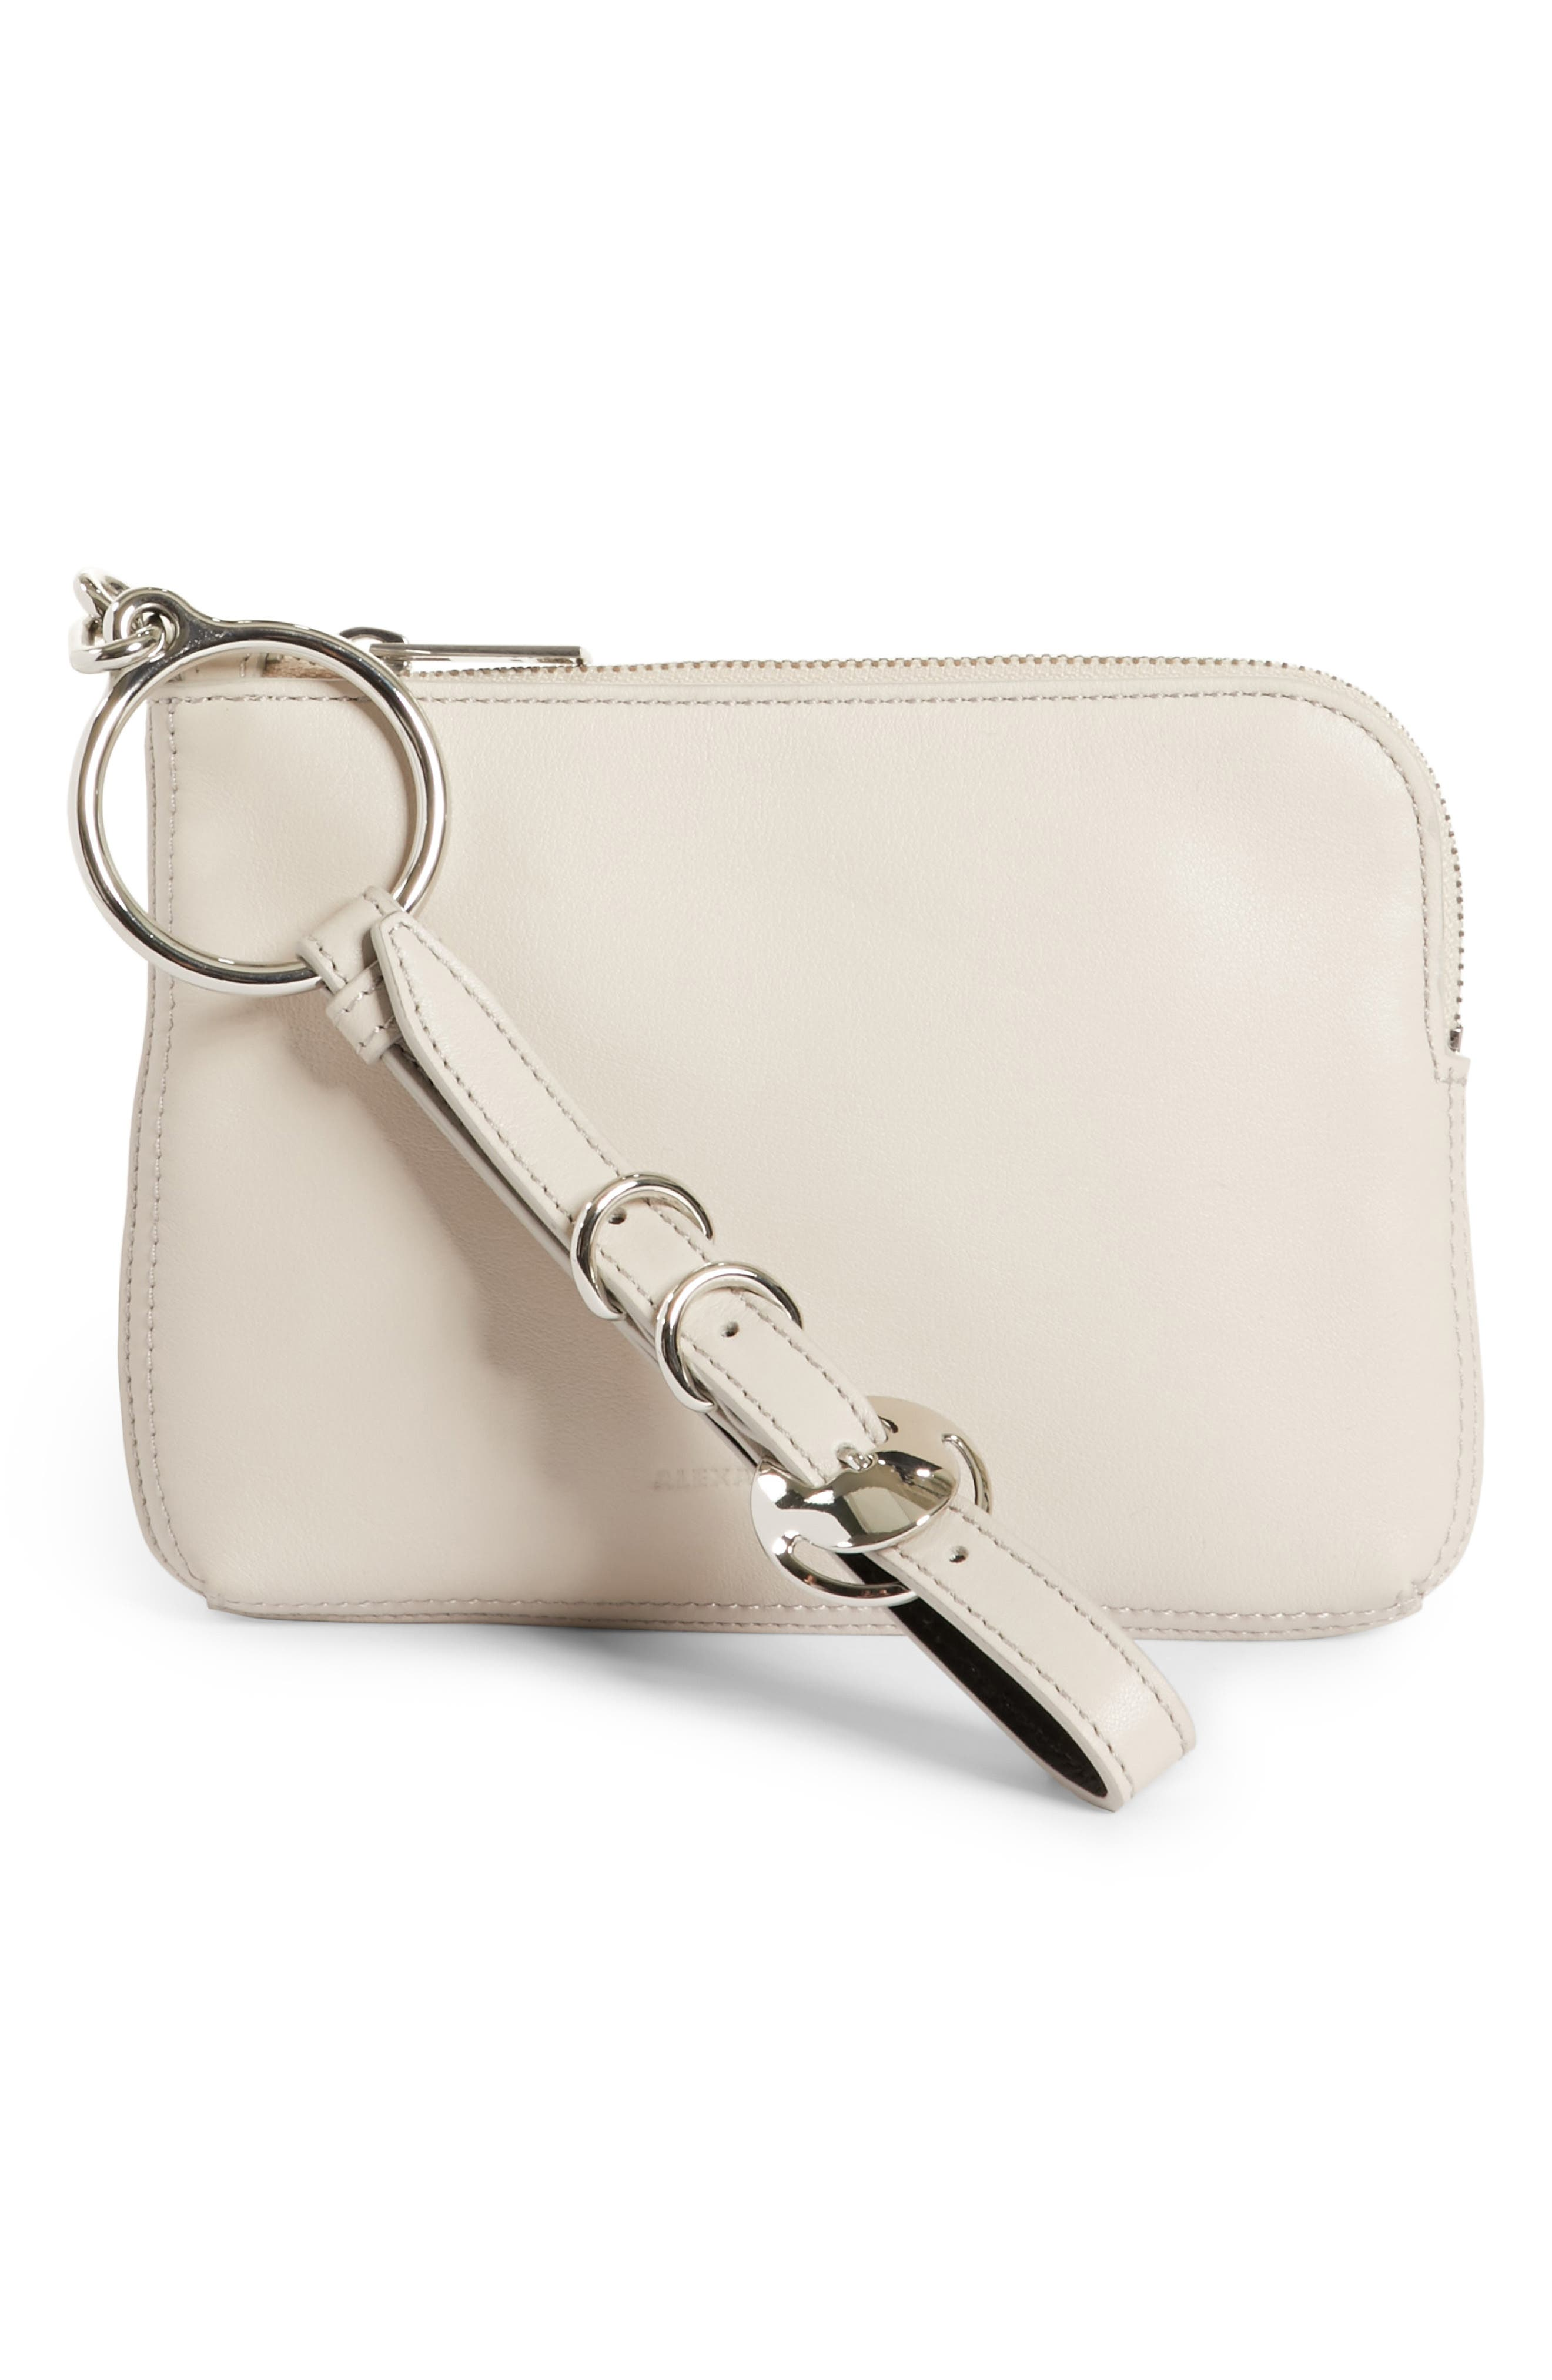 Alternate Image 1 Selected - Alexander Wang Small Ace Leather Wristlet